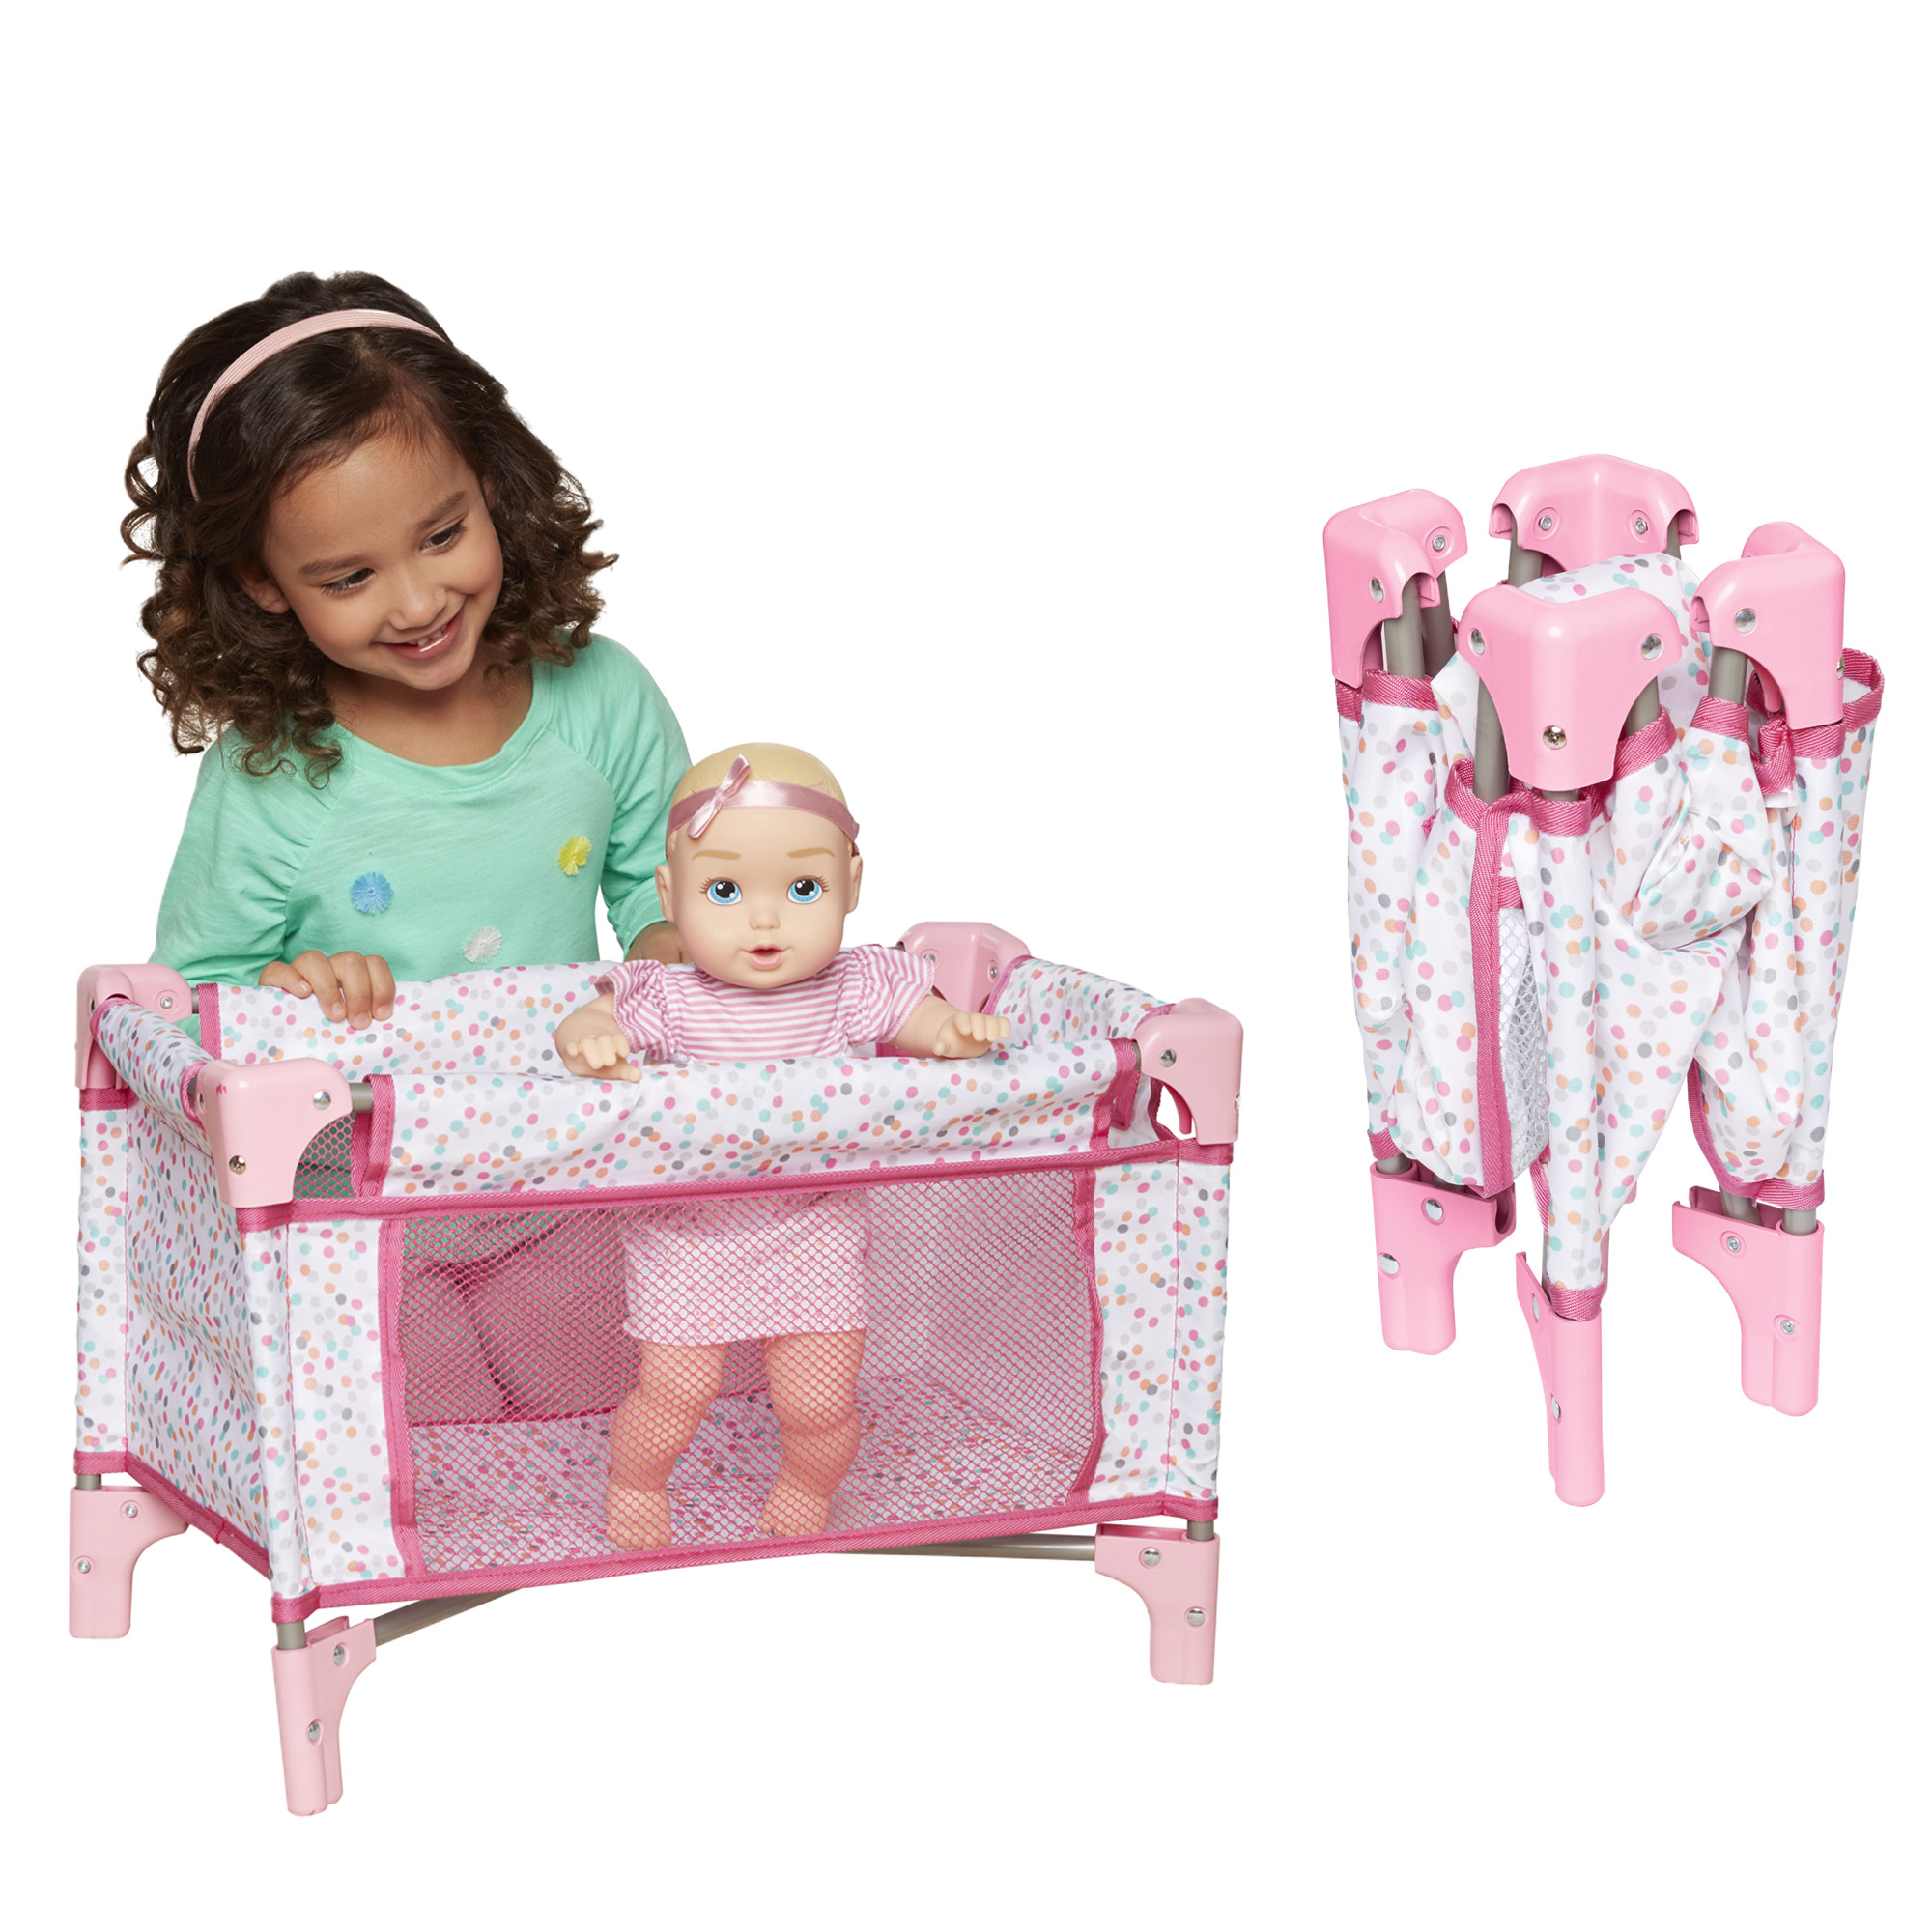 Perfectly Cute Baby Doll Folding Crib & Playard